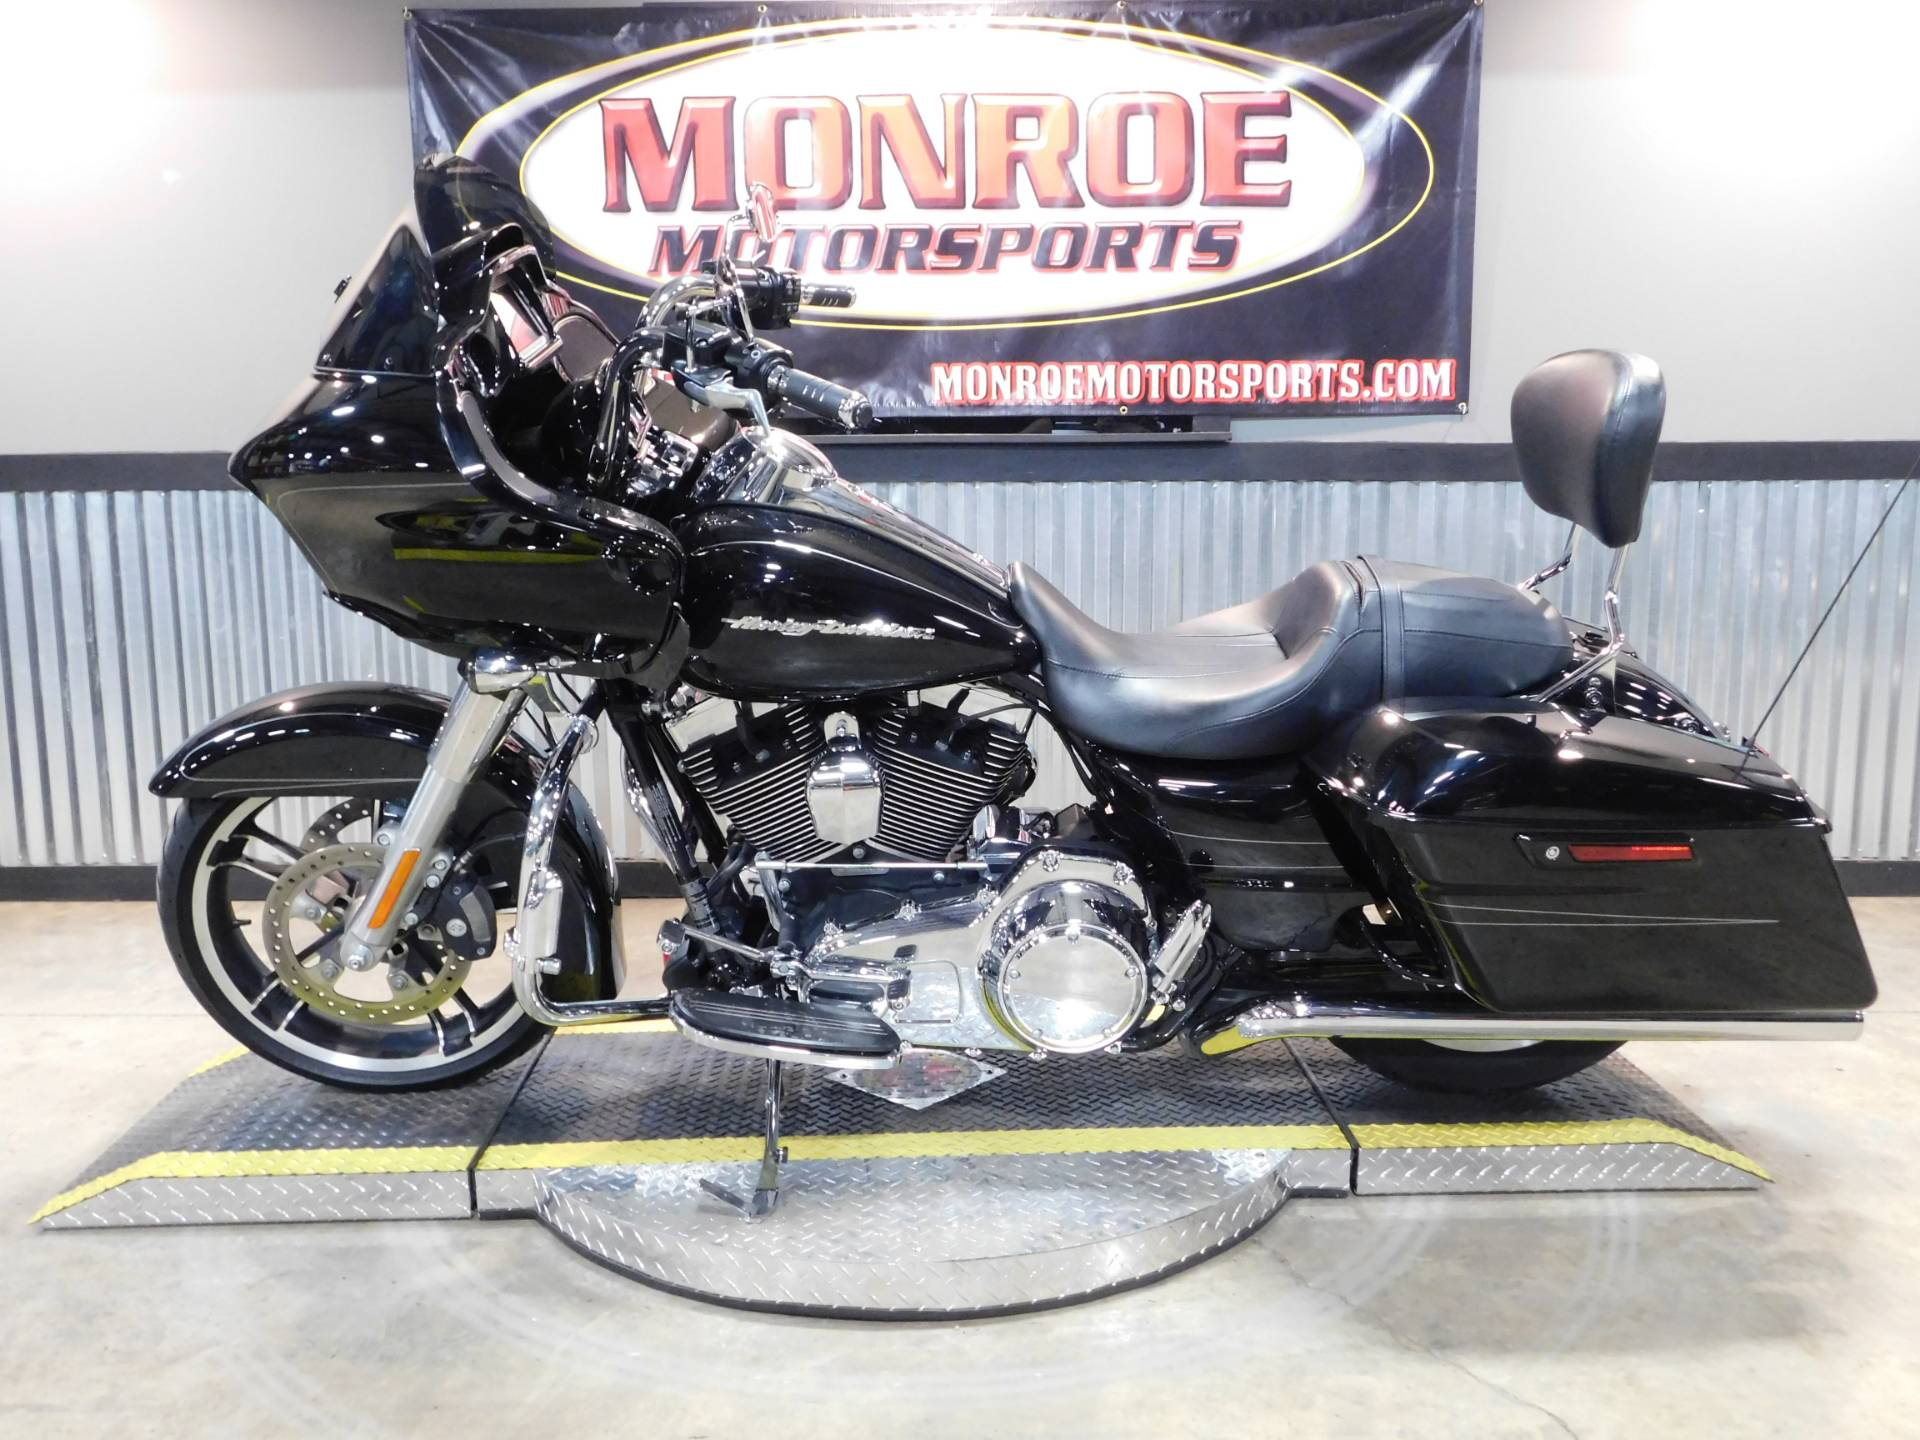 2015 Harley-Davidson Road Glide® Special in Monroe, Michigan - Photo 2